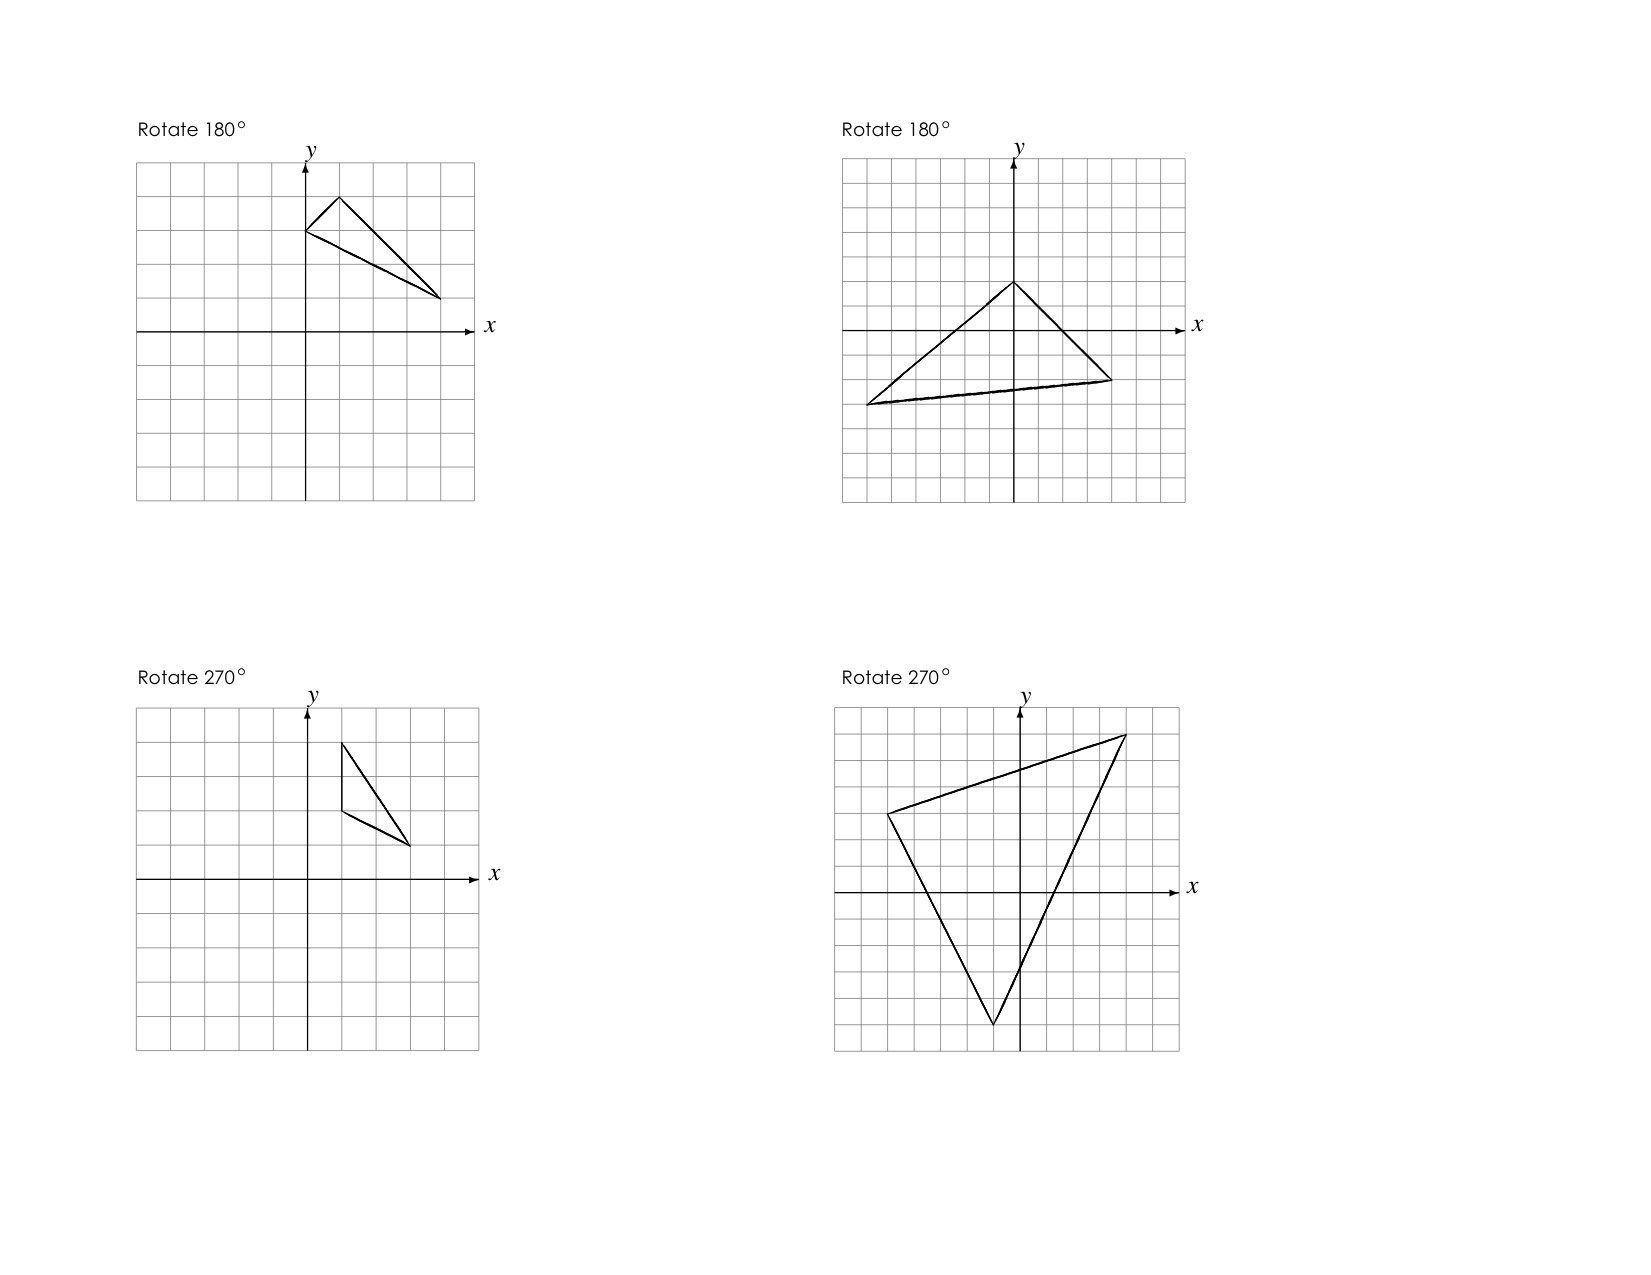 worksheet Rotation Math Worksheets rotations worksheet free worksheets library download and print geometry transformations worksheets